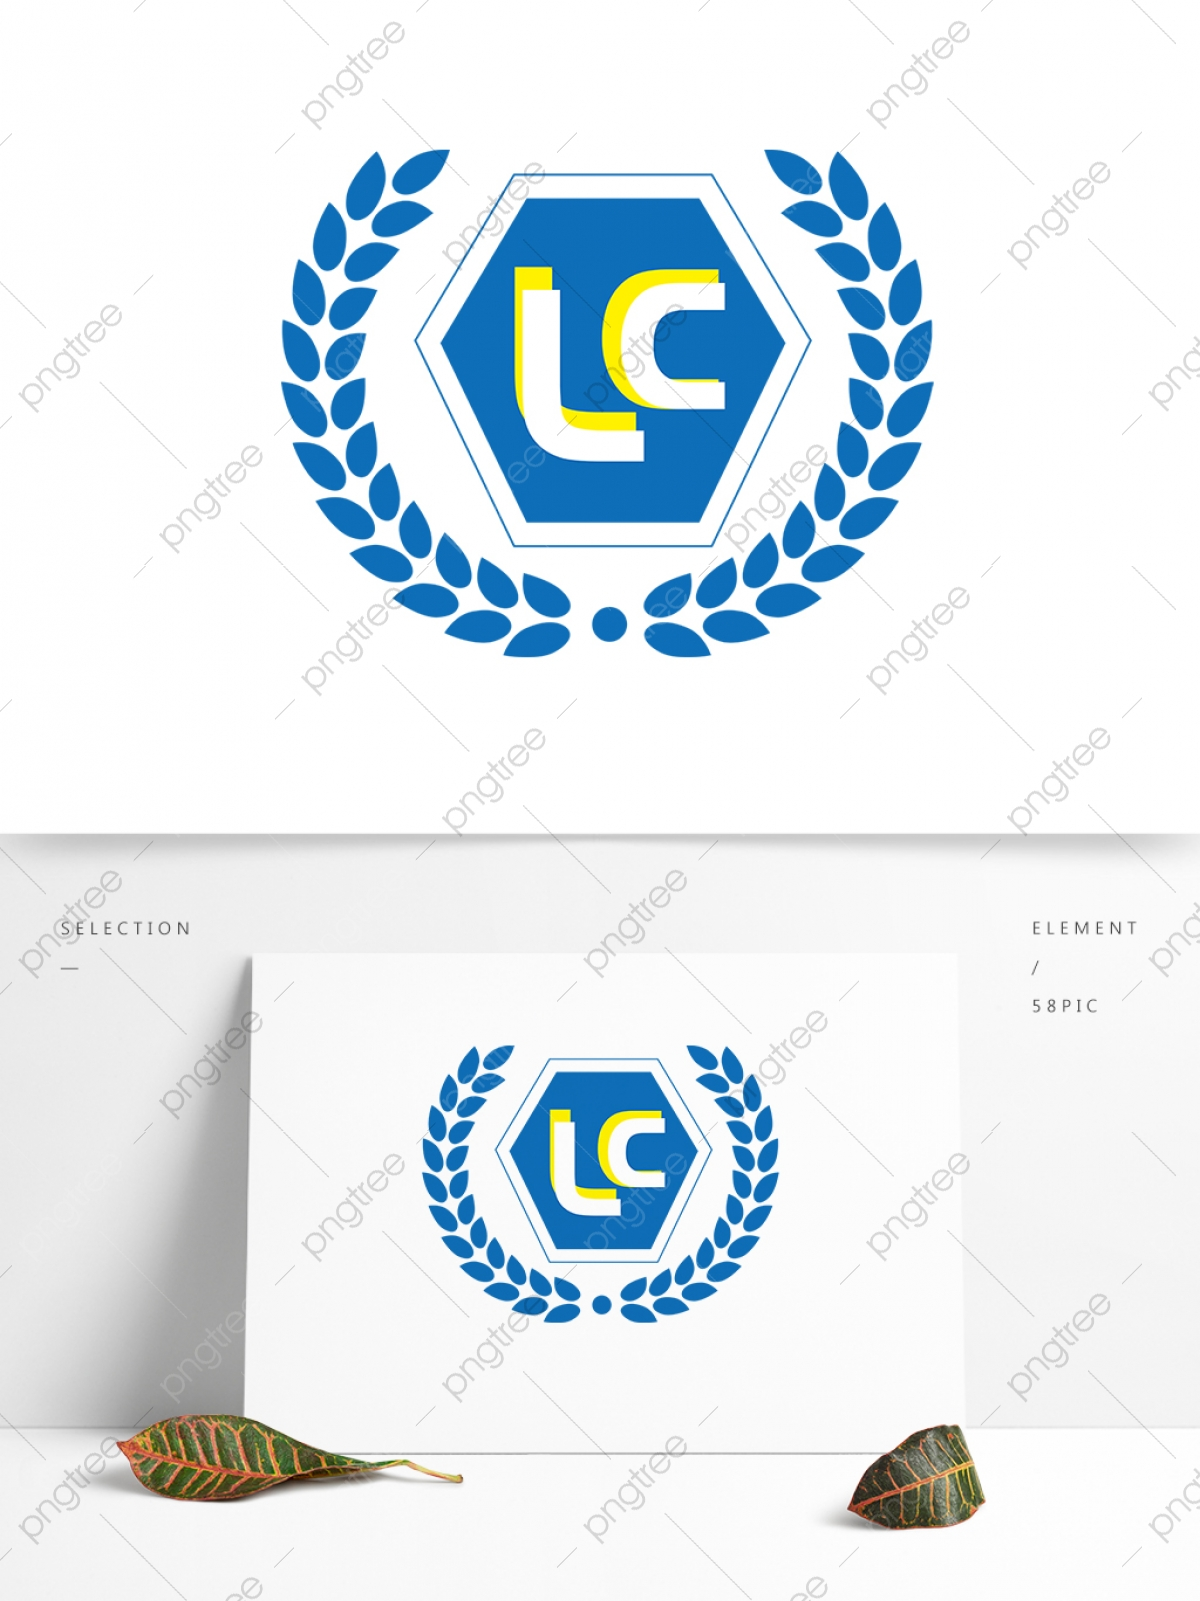 original logo png images vector and psd files free download on pngtree https pngtree com freepng original logo lclogo letter logo corporate logo 4935457 html